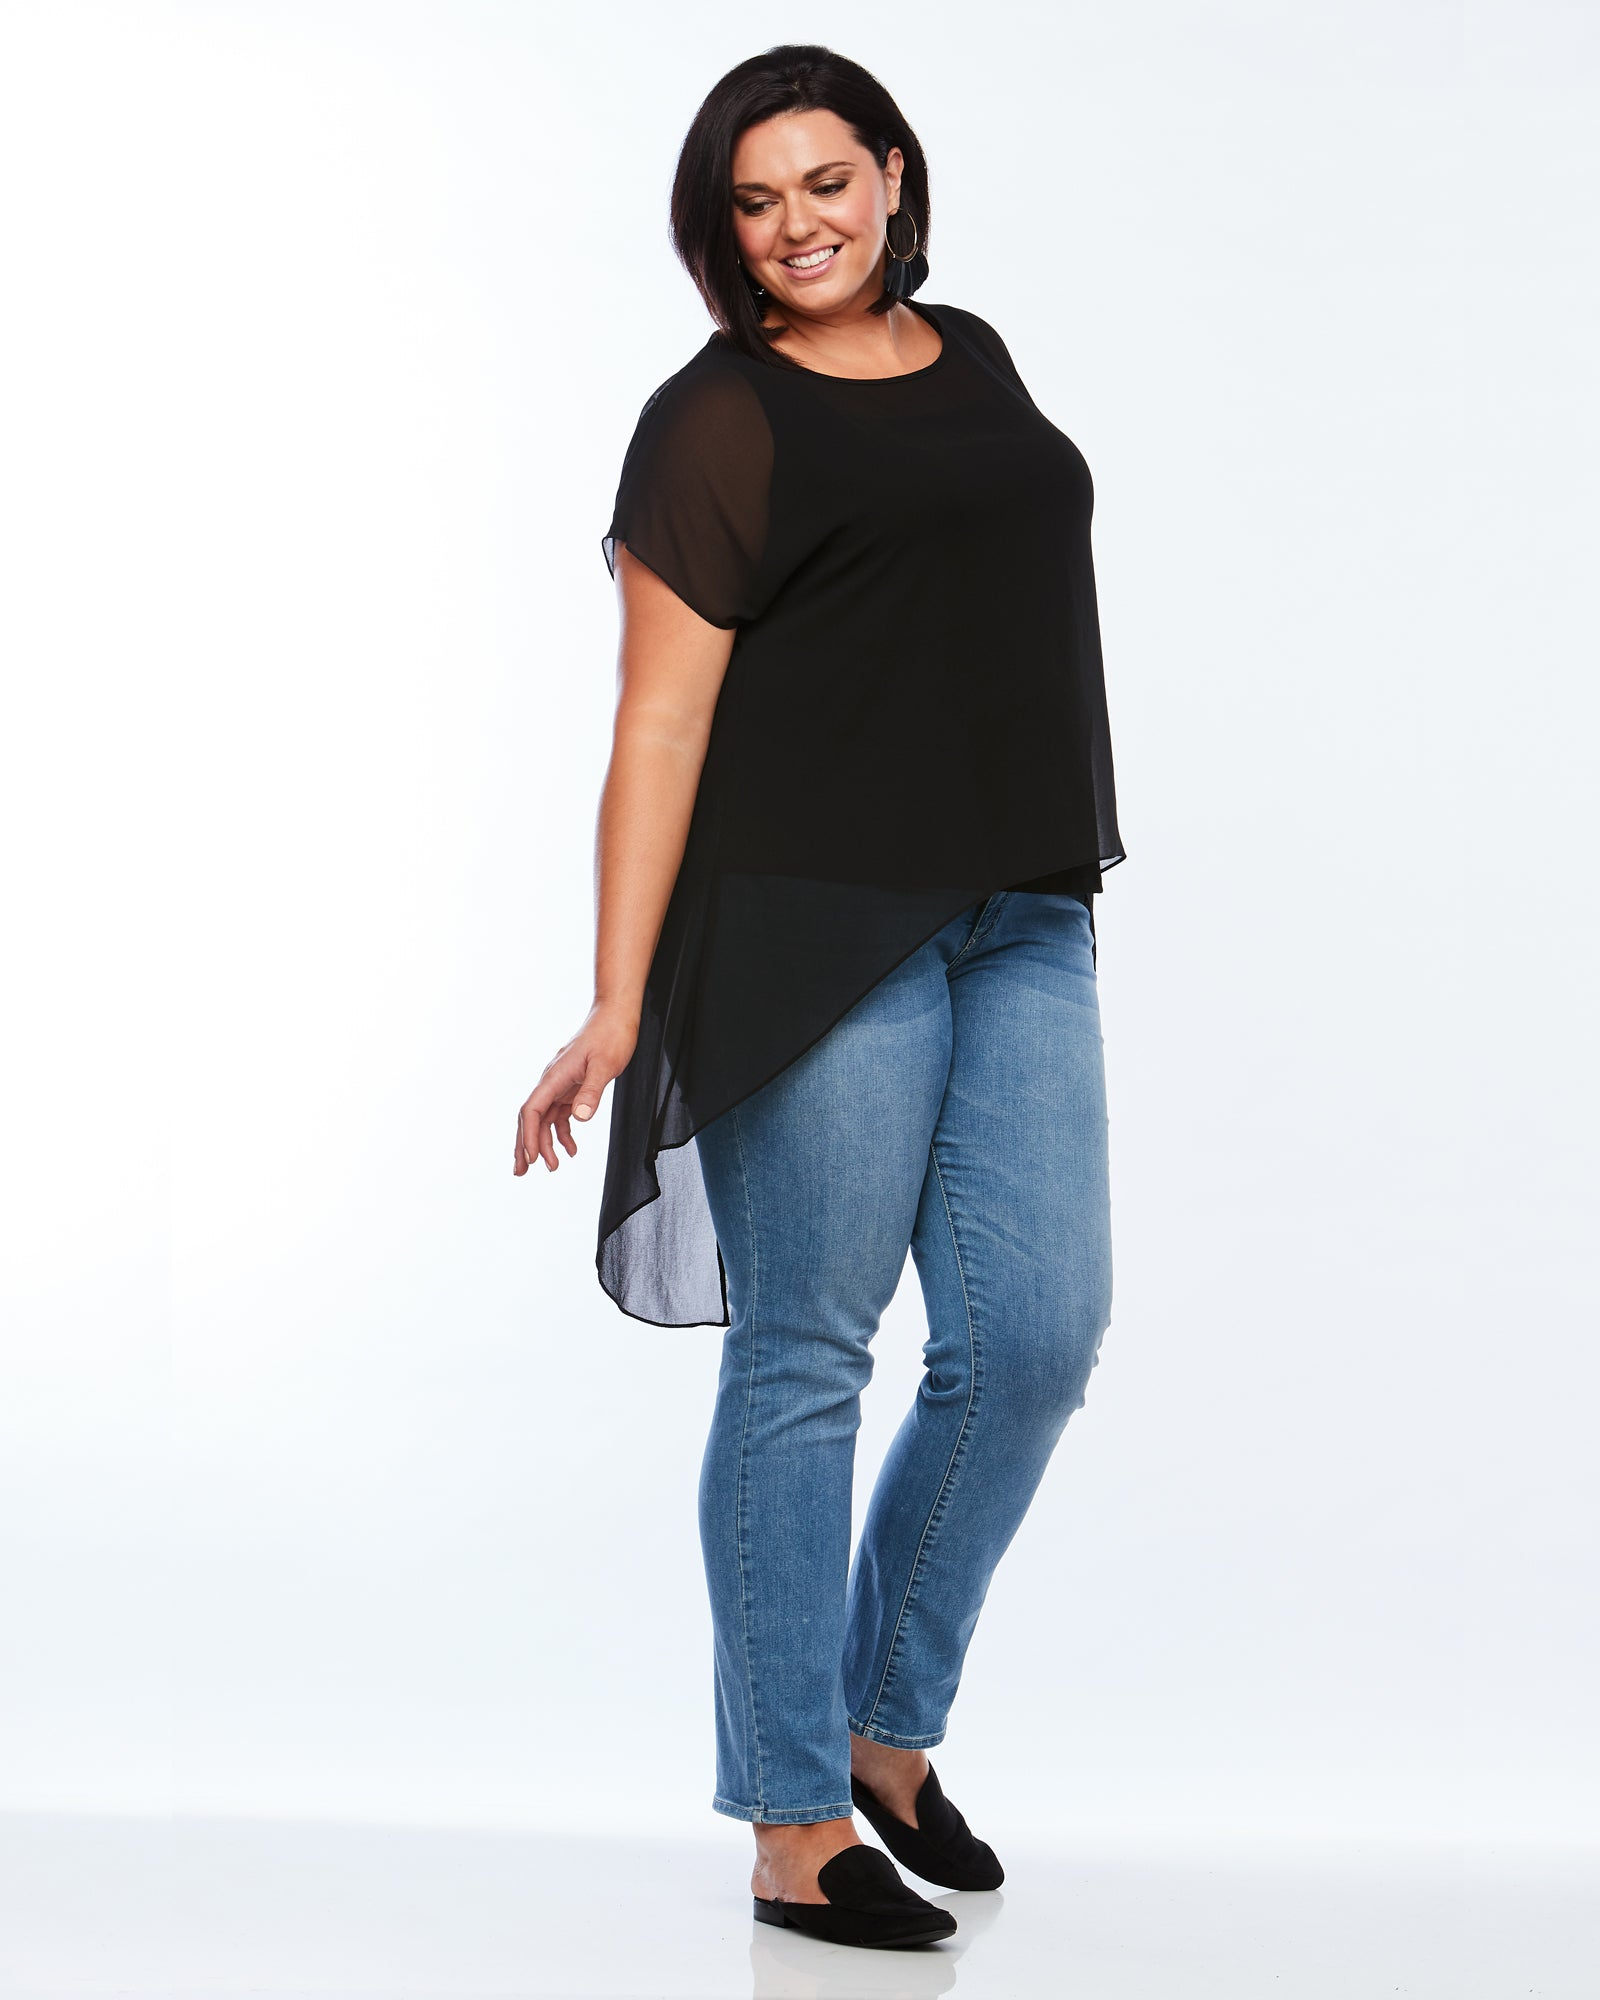 Room To Move Overlay top, plus size Black Top